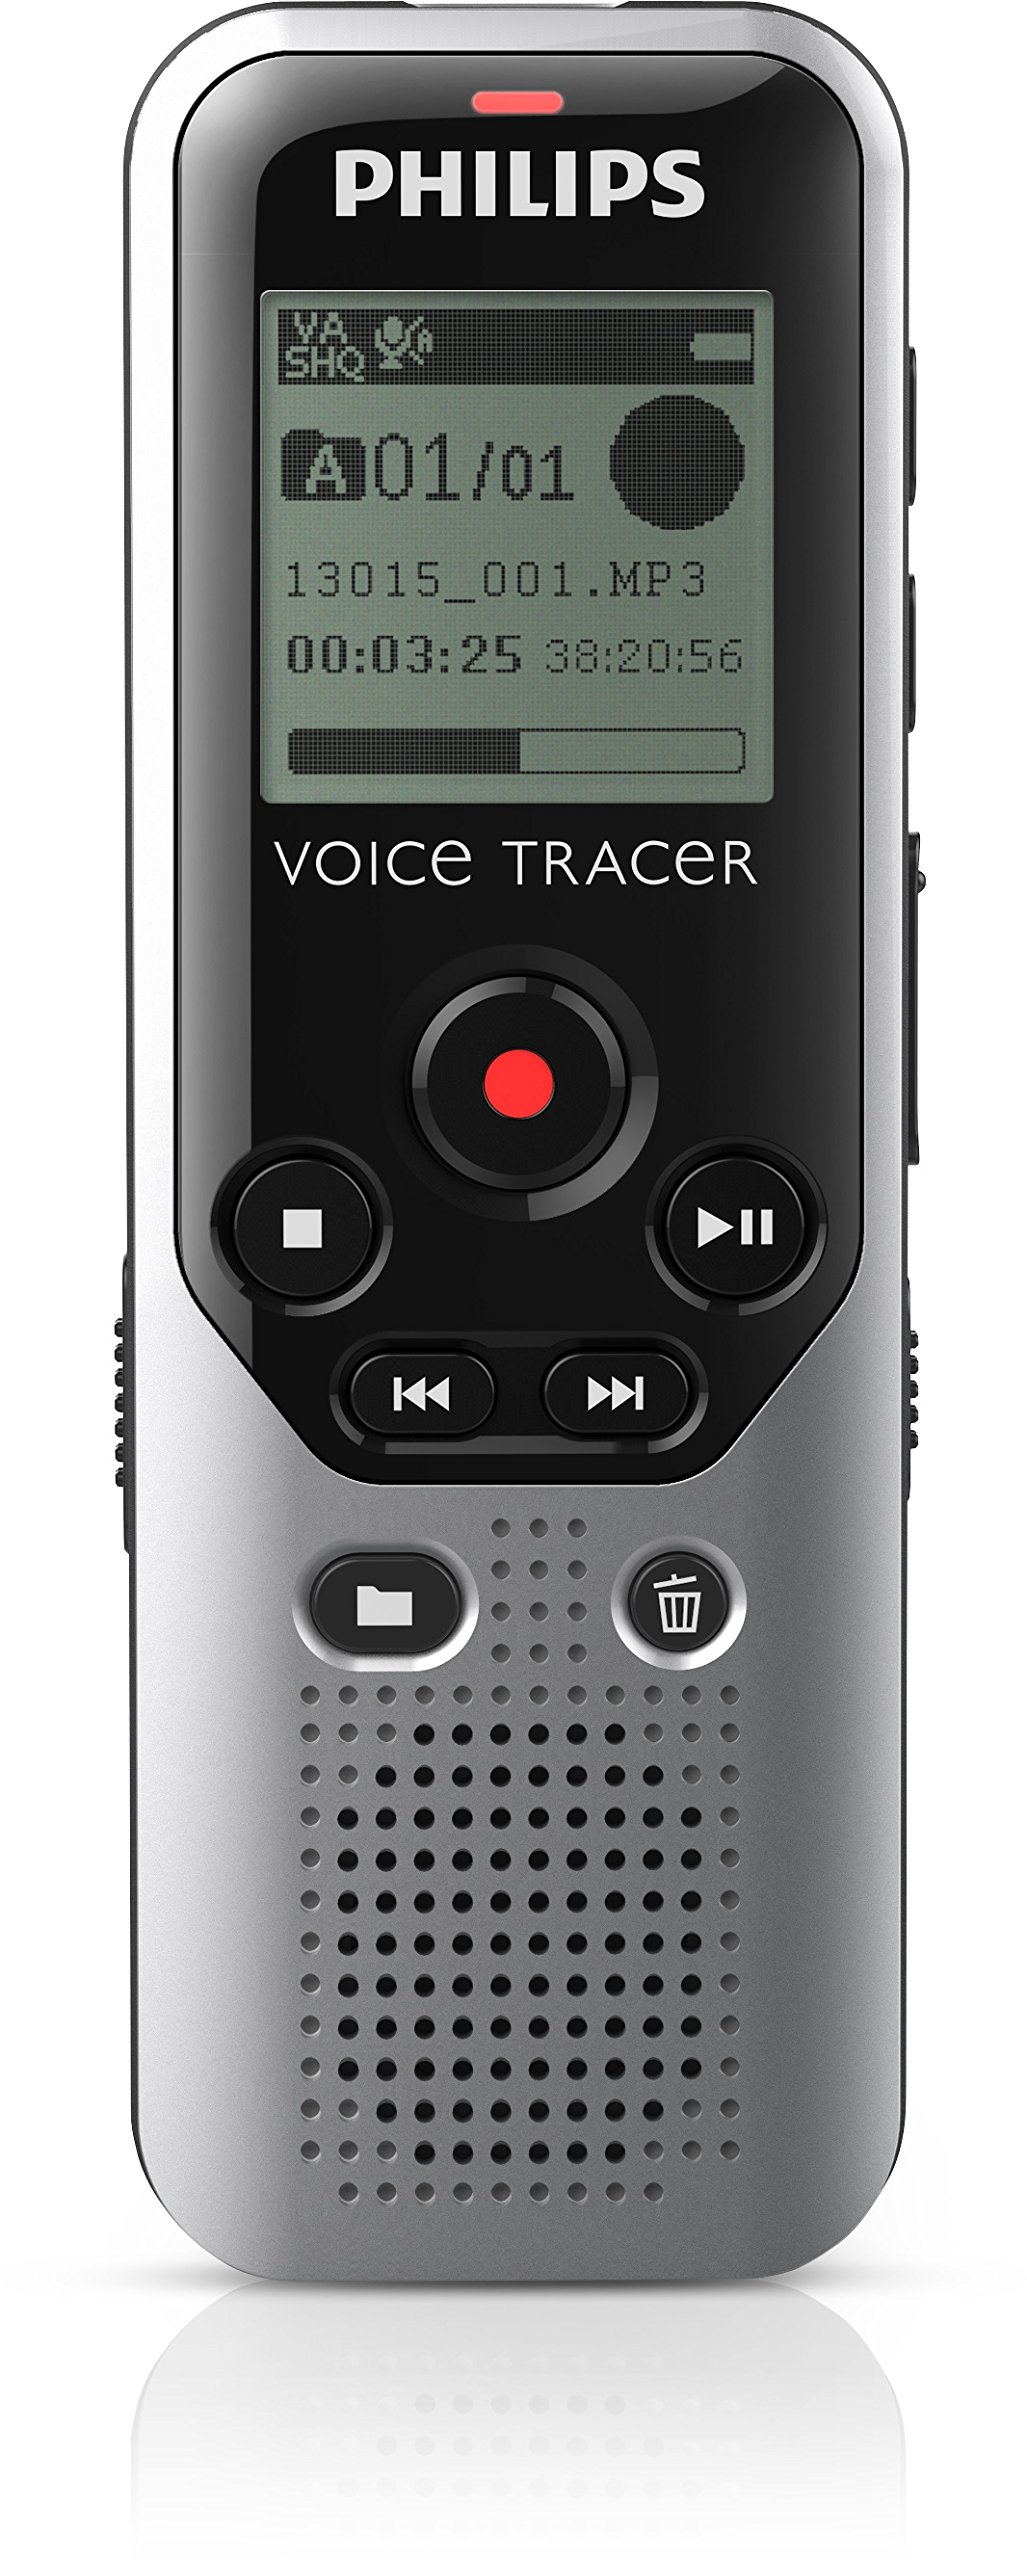 Philips Voice Tracer DVT1200 With Stereo MP3 Recording